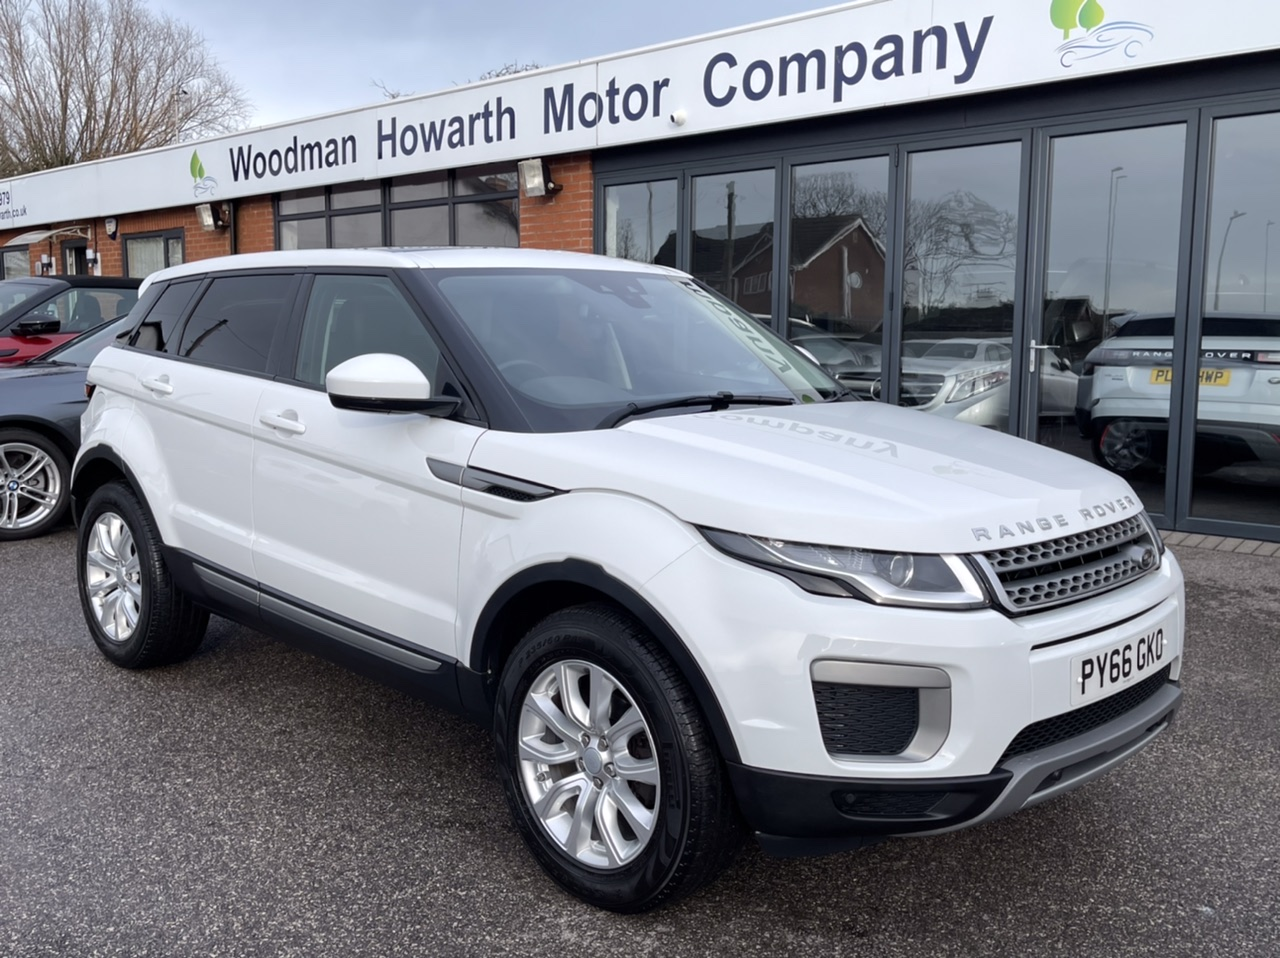 2017 LAND ROVER RANGE ROVER EVOQUE 2.0 ED4 SE MANUAL 5 DOOR PANORAMIC GLASS ROOF